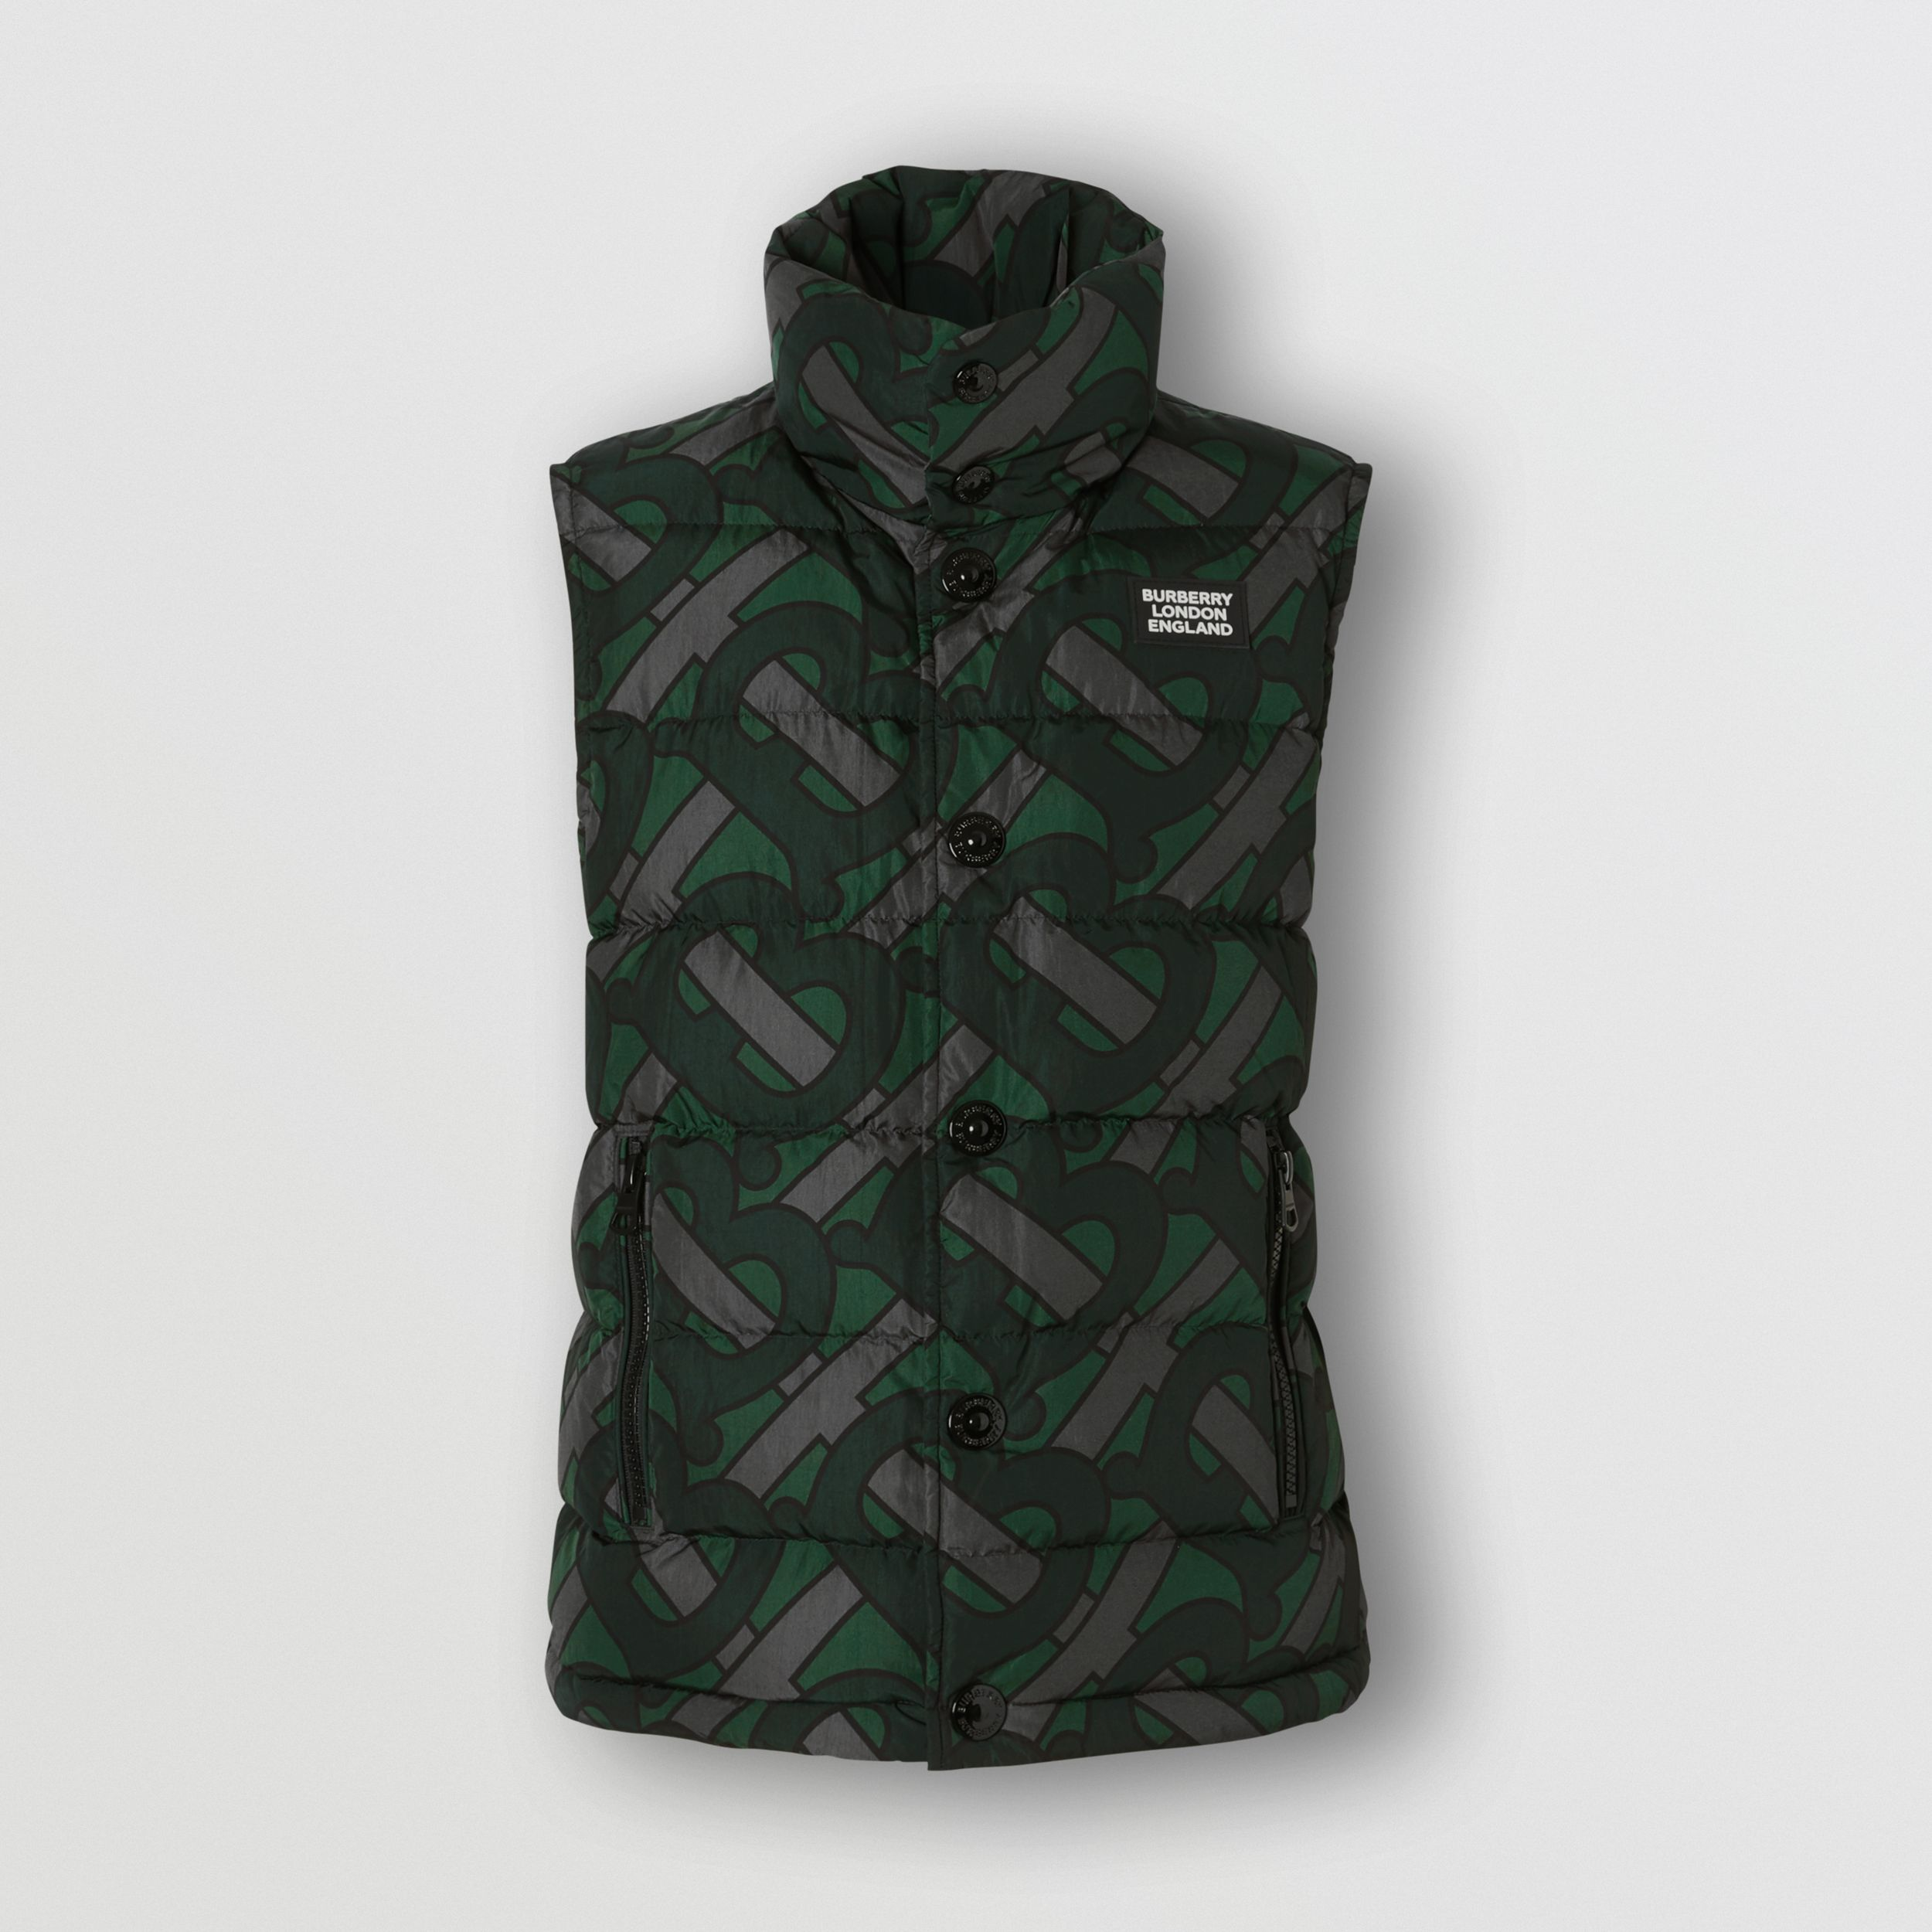 Monogram Print Puffer Gilet in Forest Green | Burberry - 1